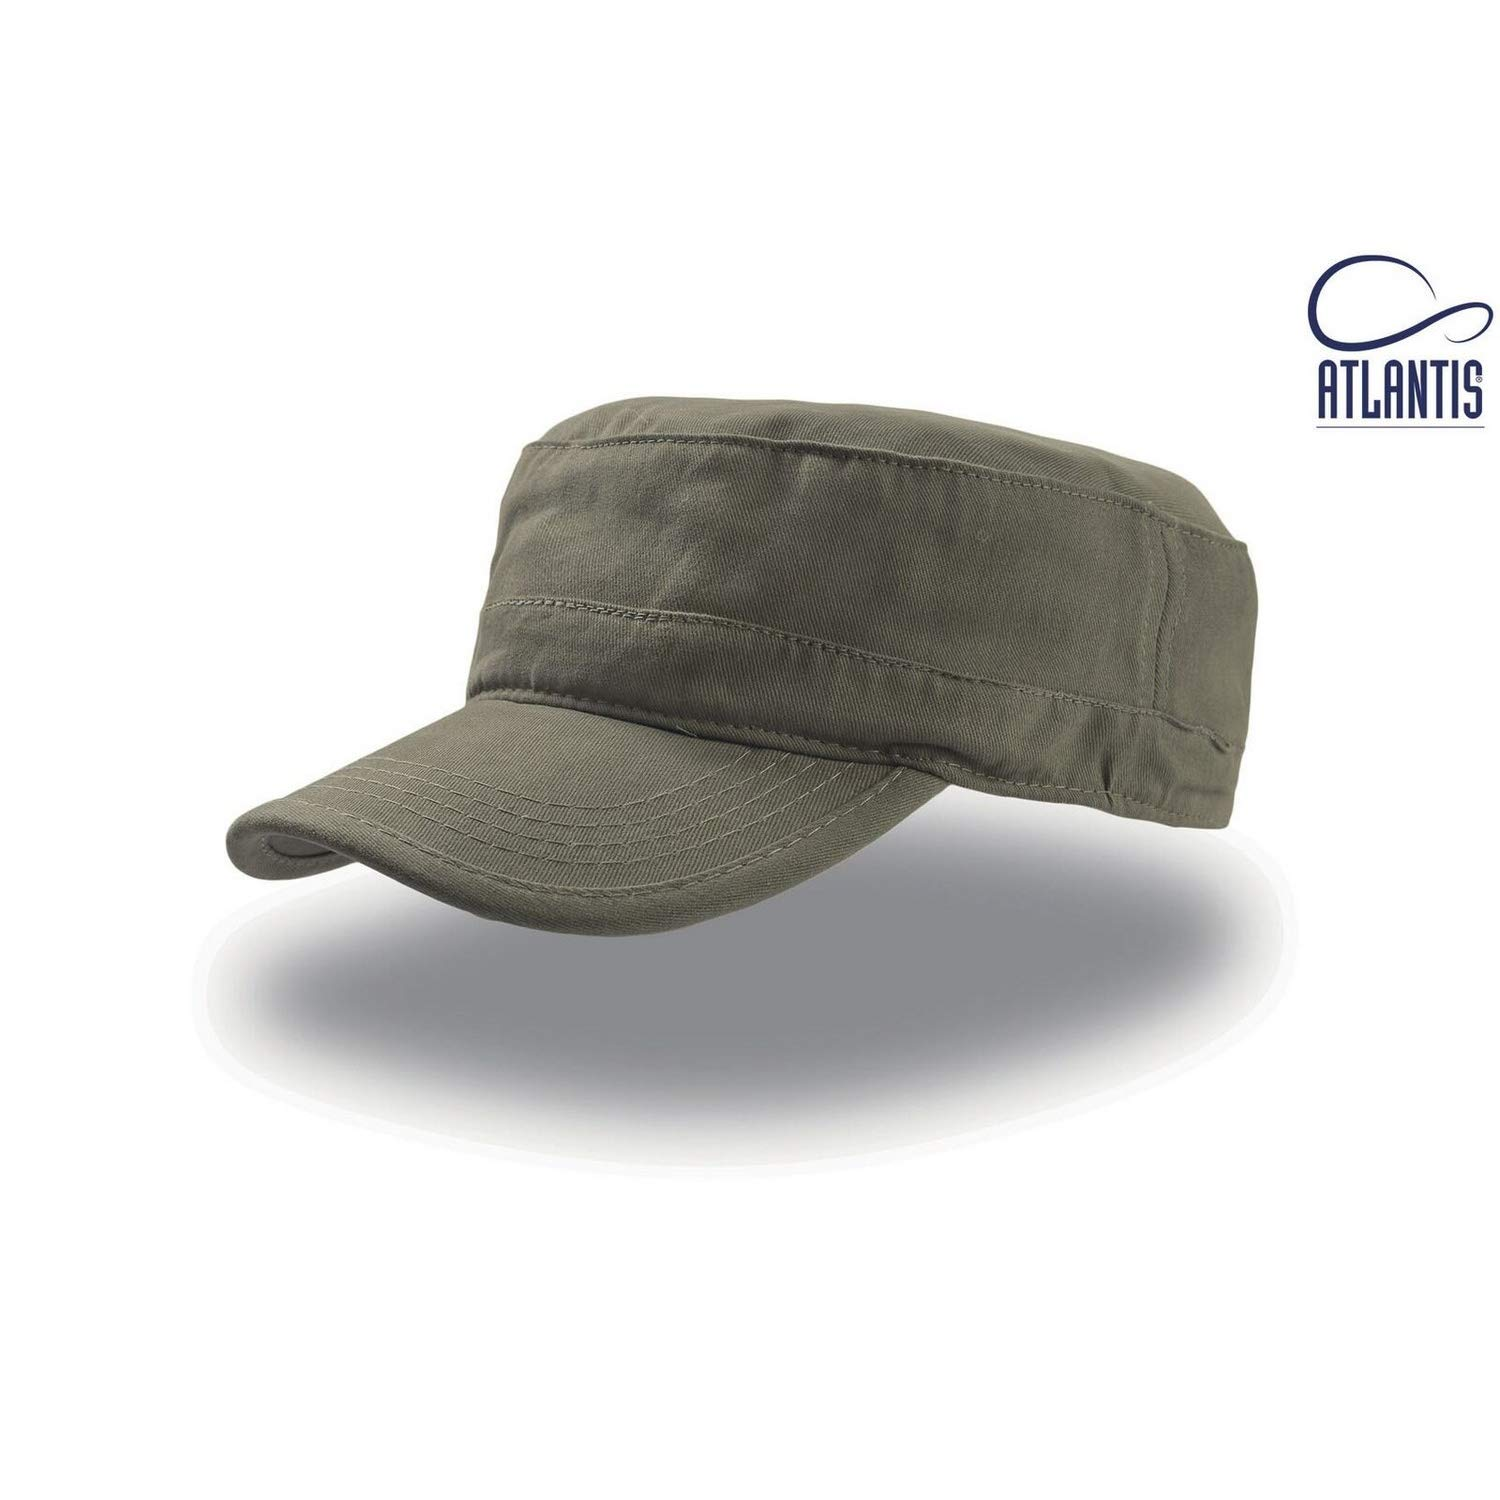 Atlantis Tank Brushed Cotton Military Cap UTAB225_3